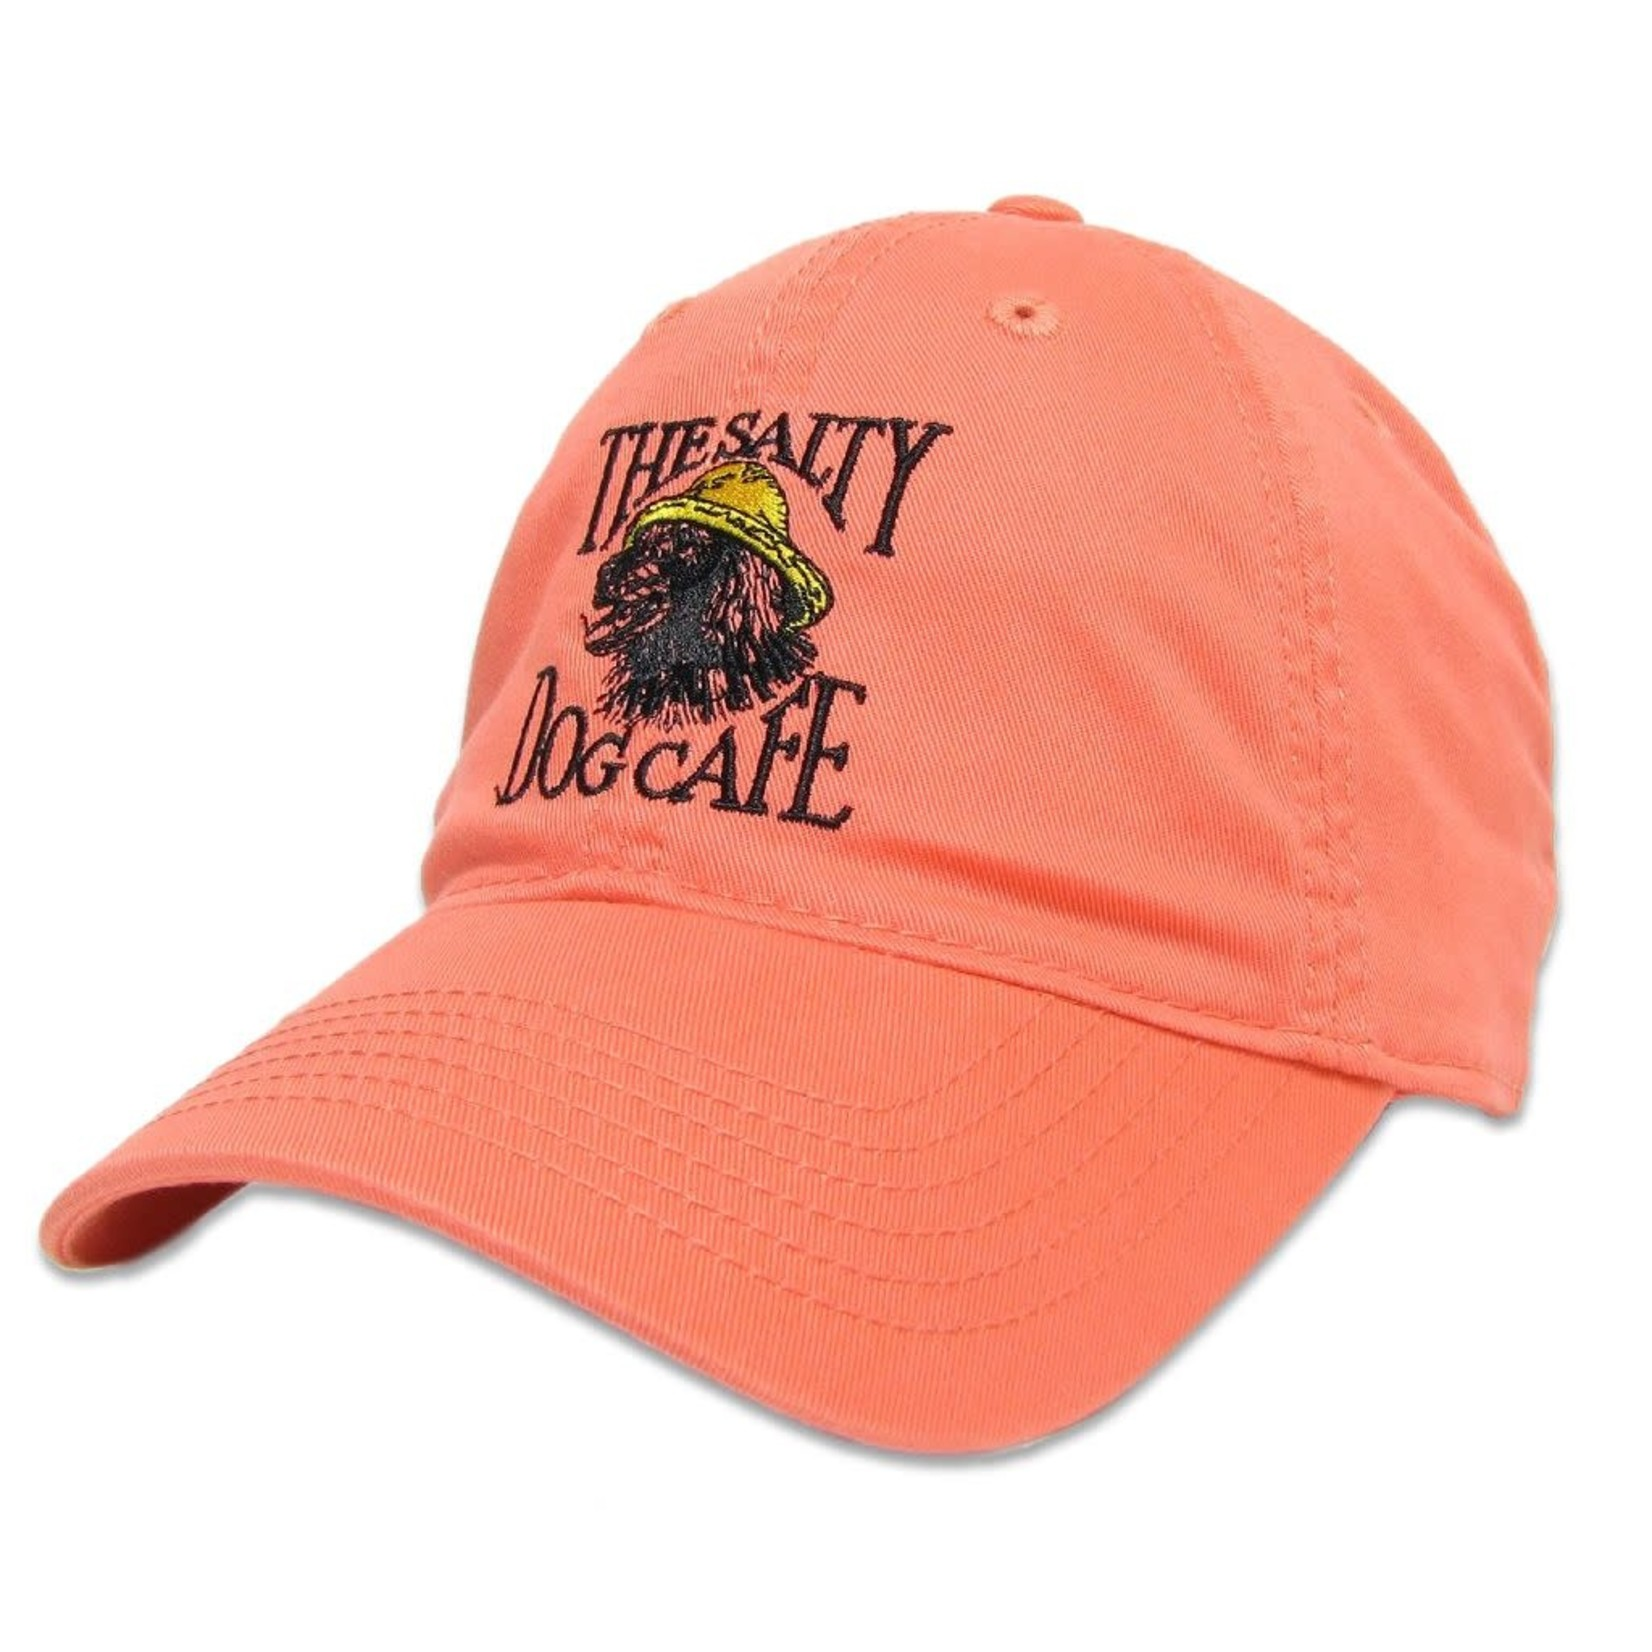 Hat - Relaxed Twill - Vintage, Coral